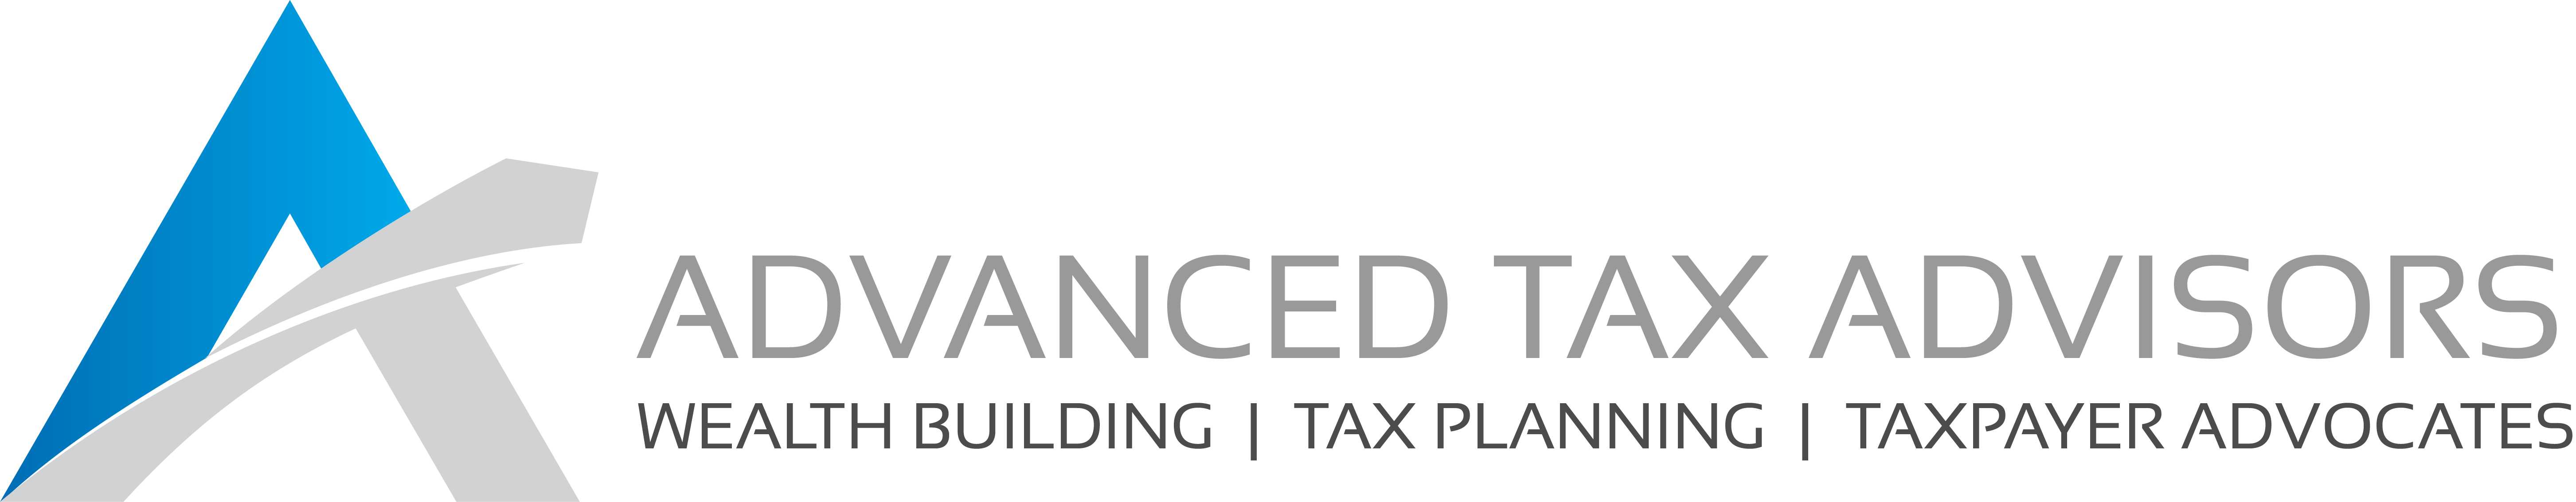 Advanced Tax Advisors